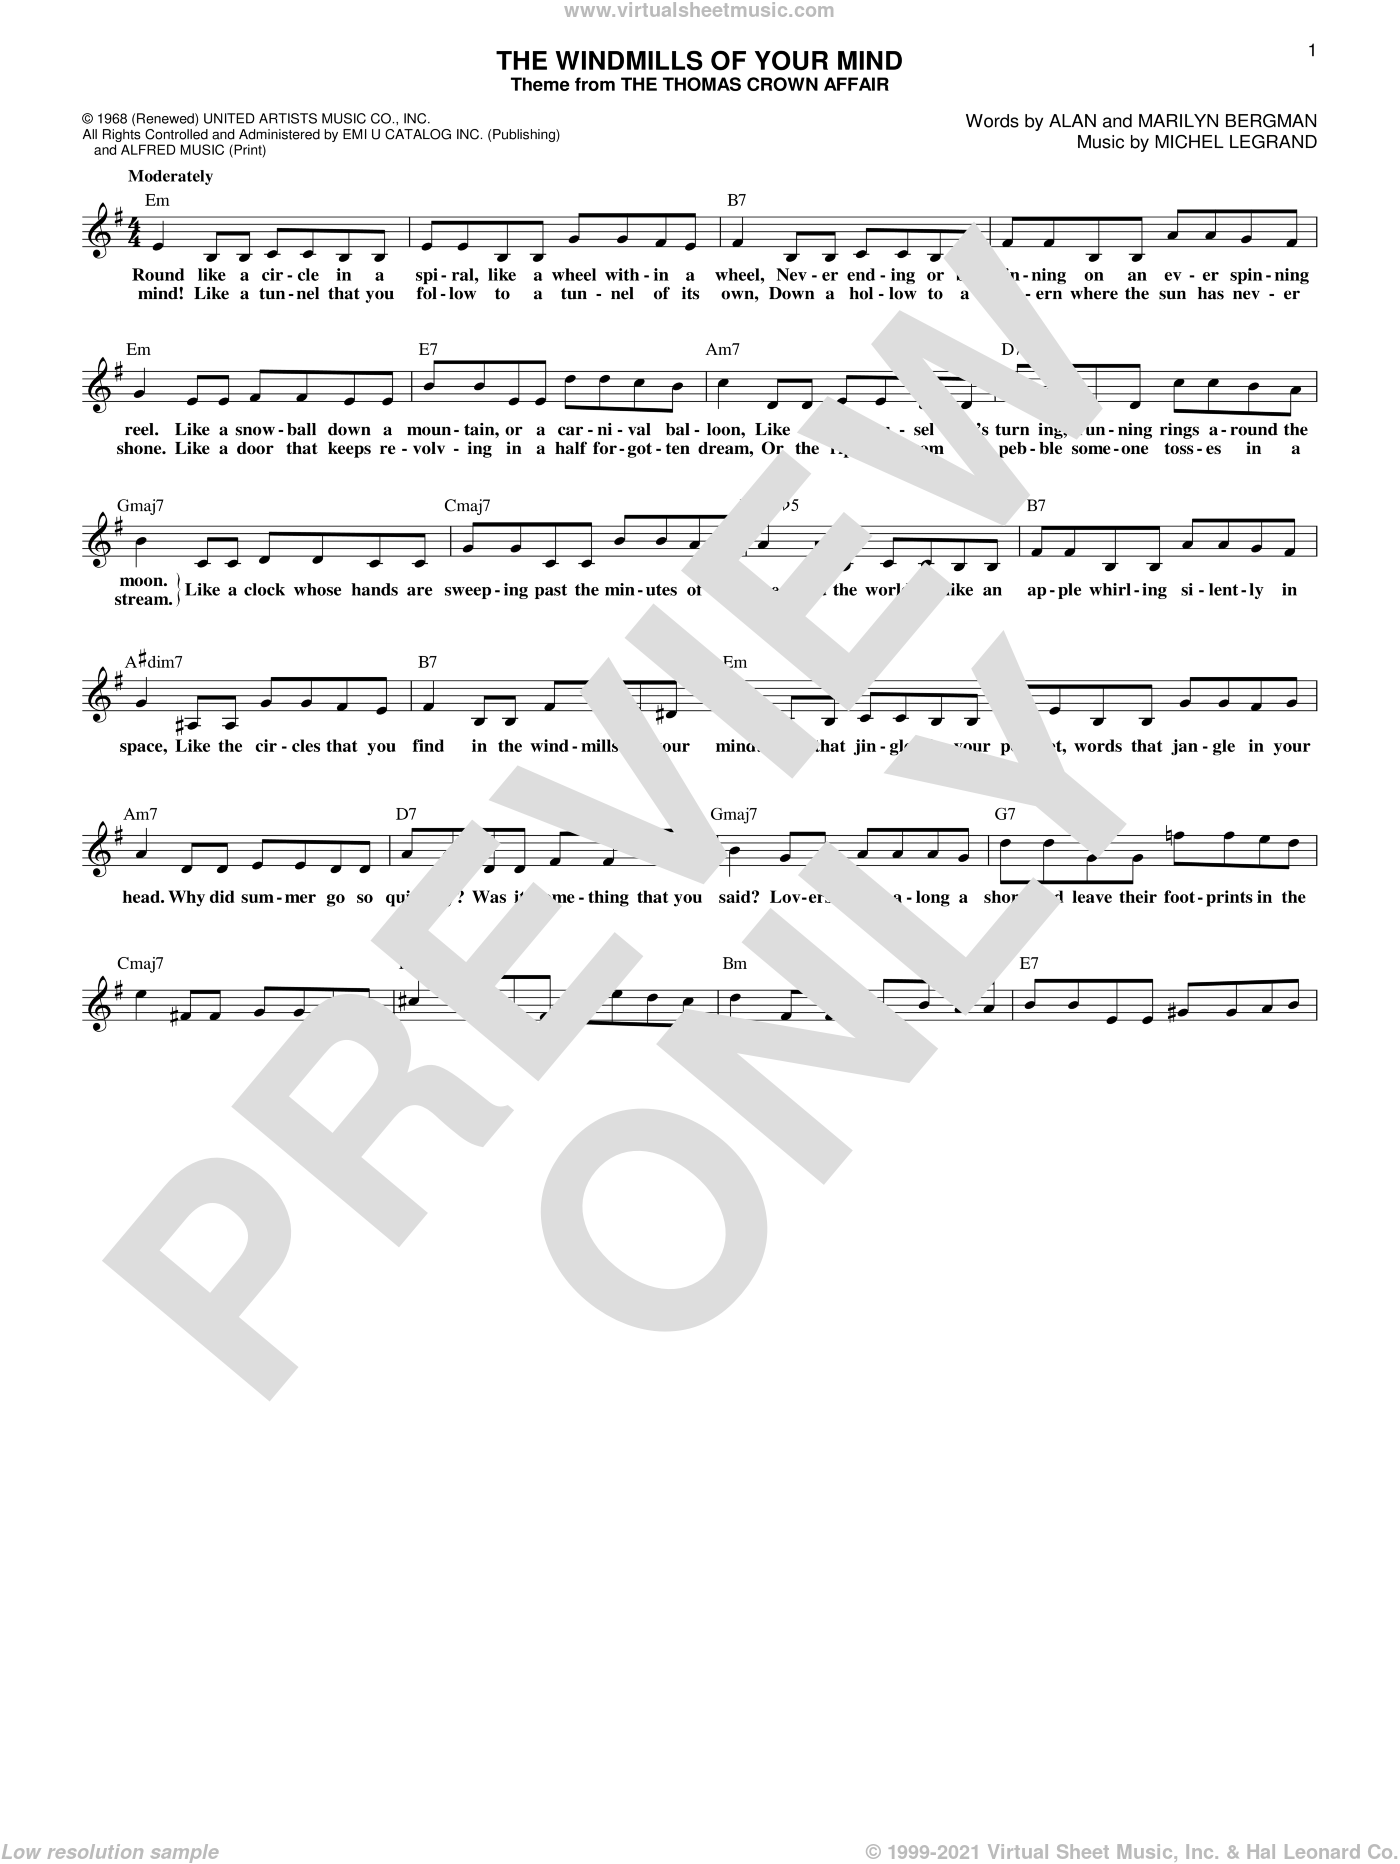 The Windmills Of Your Mind sheet music for voice and other instruments (fake book) by Michel Legrand, Alan Bergman and Marilyn Bergman, intermediate skill level